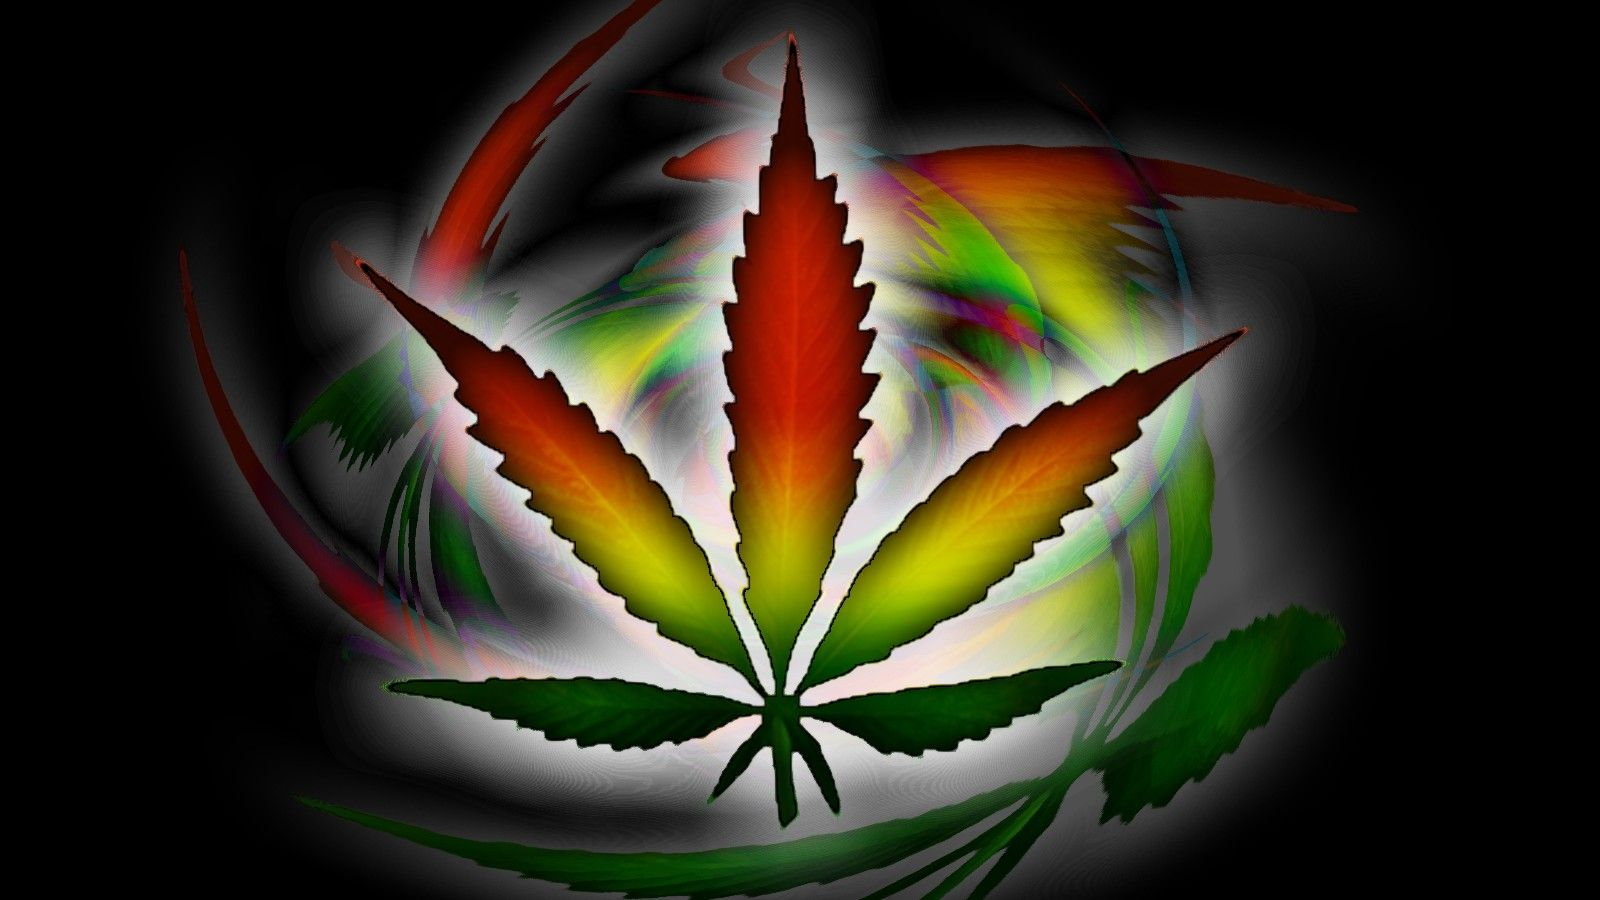 Dope Weed Wallpapers - Top Free Dope